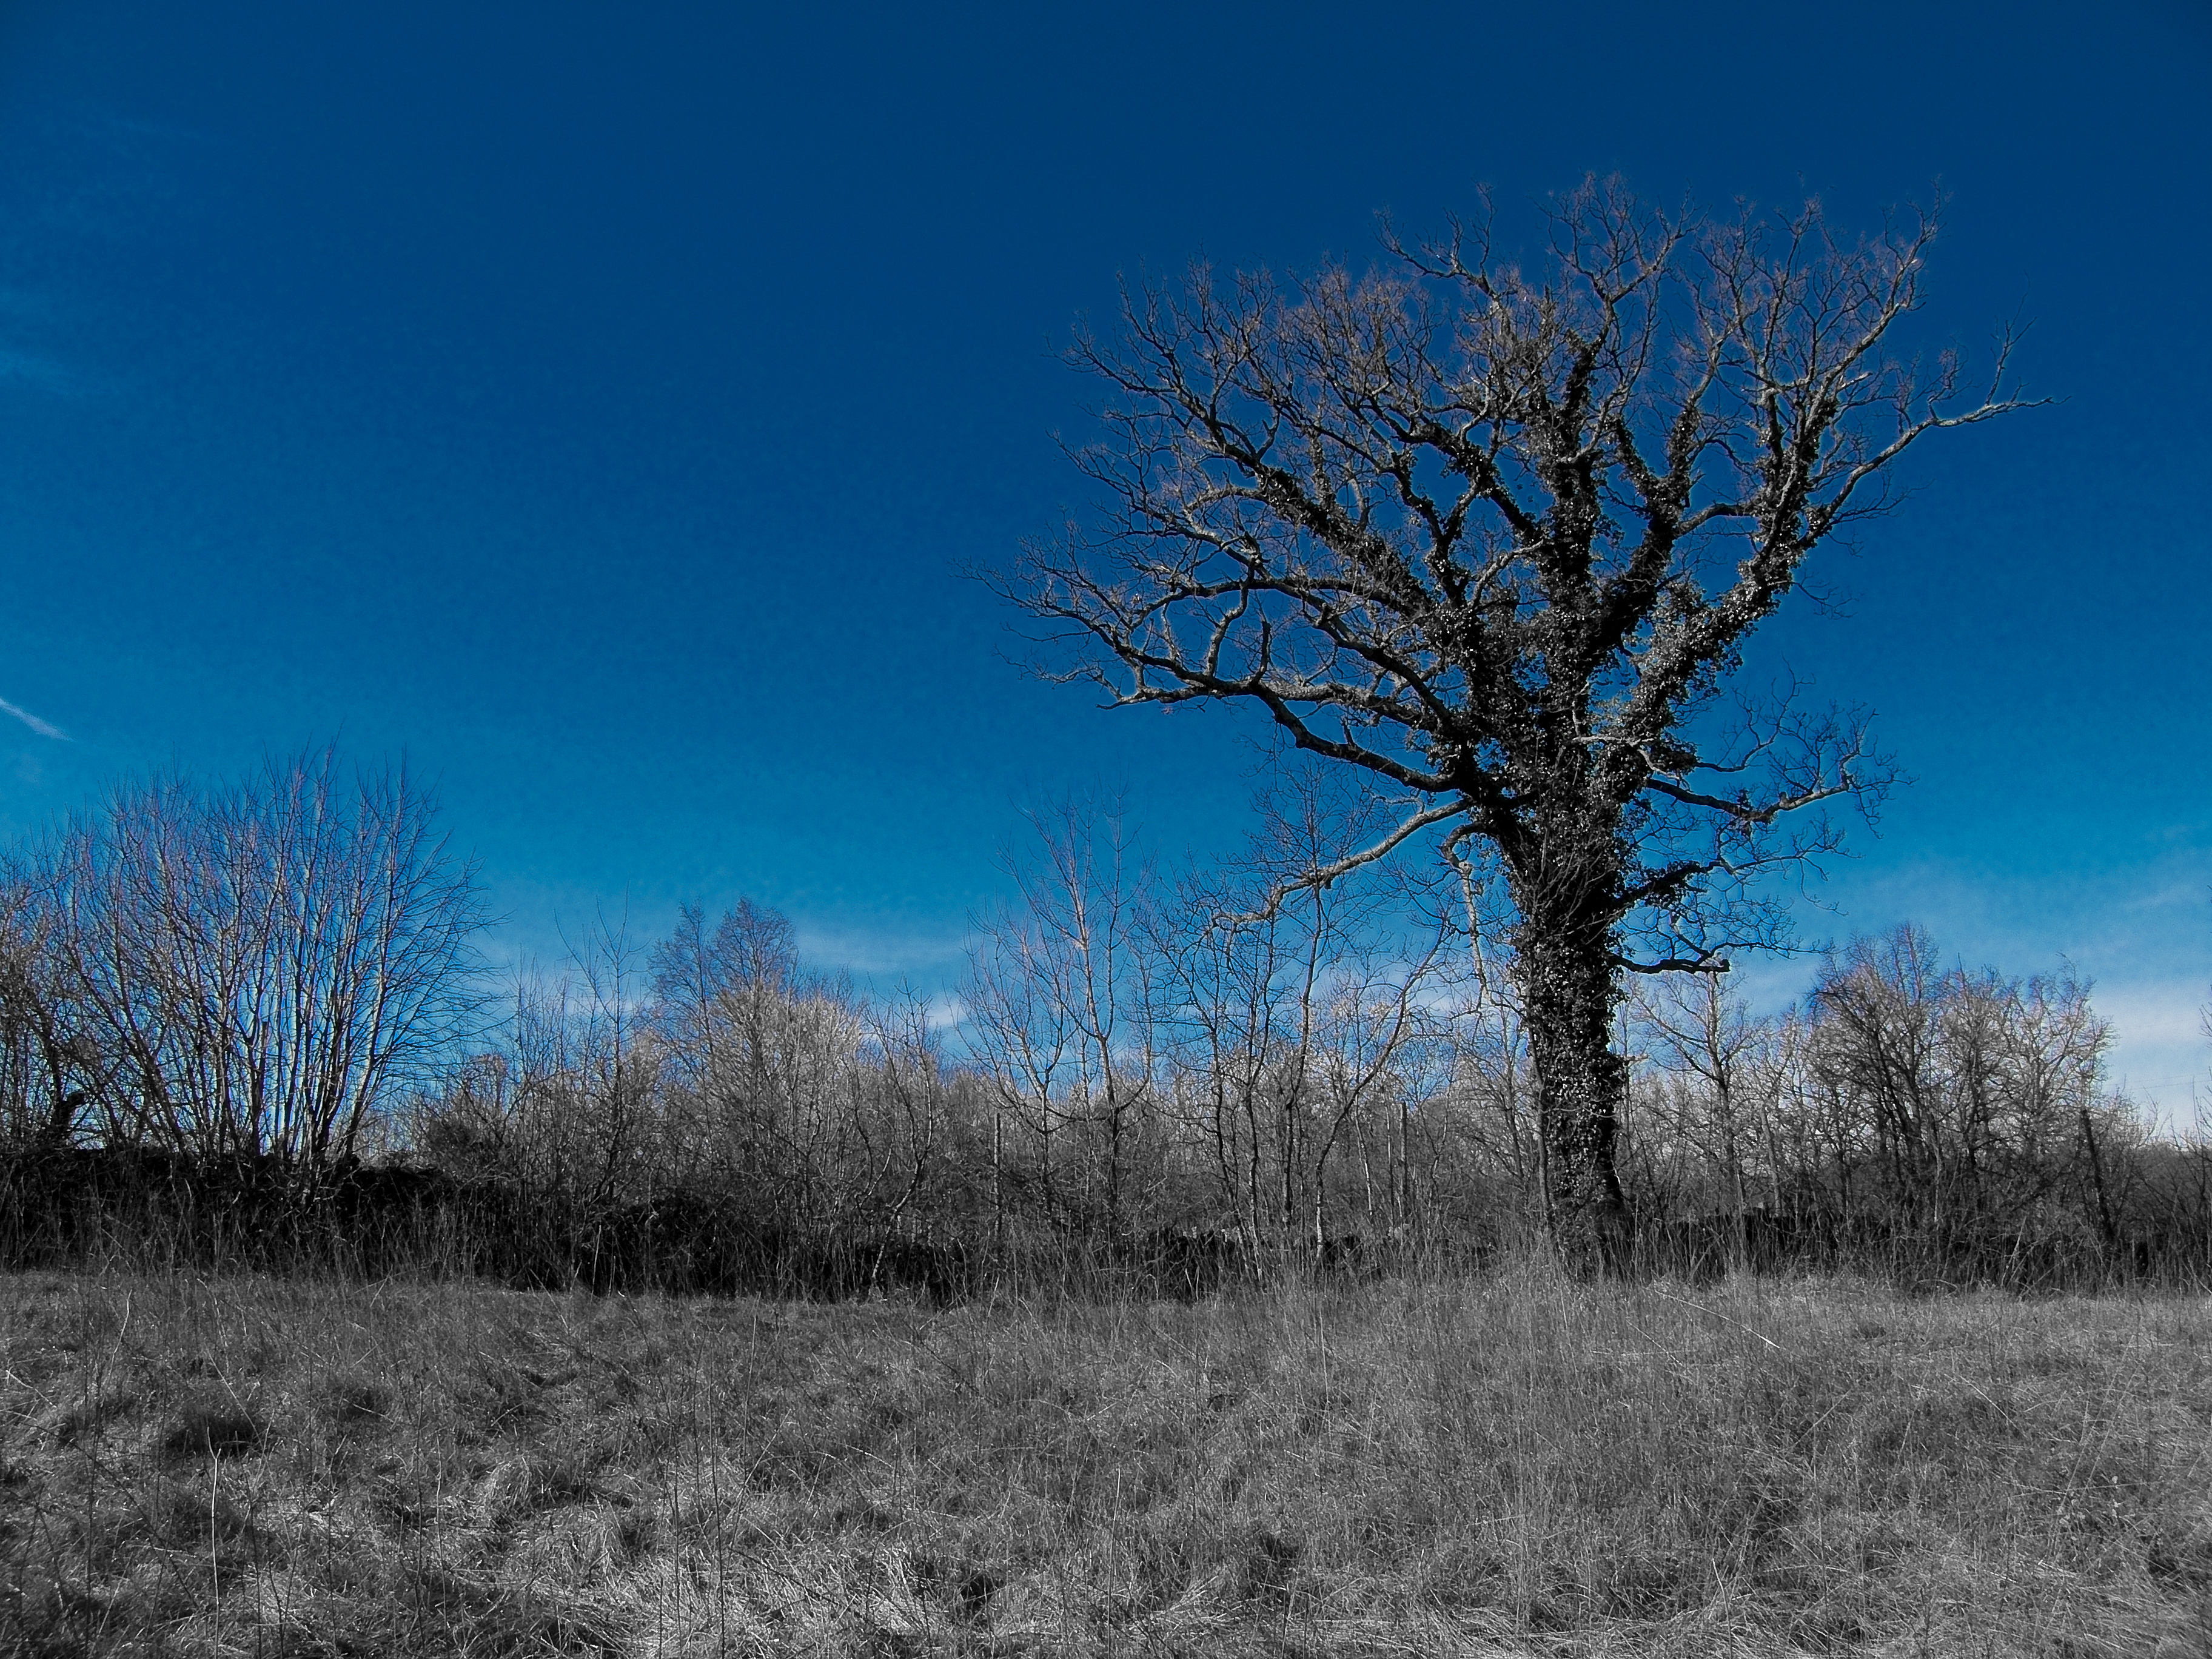 Blue tree, Bare, Blue, Branches, Clouds, HQ Photo